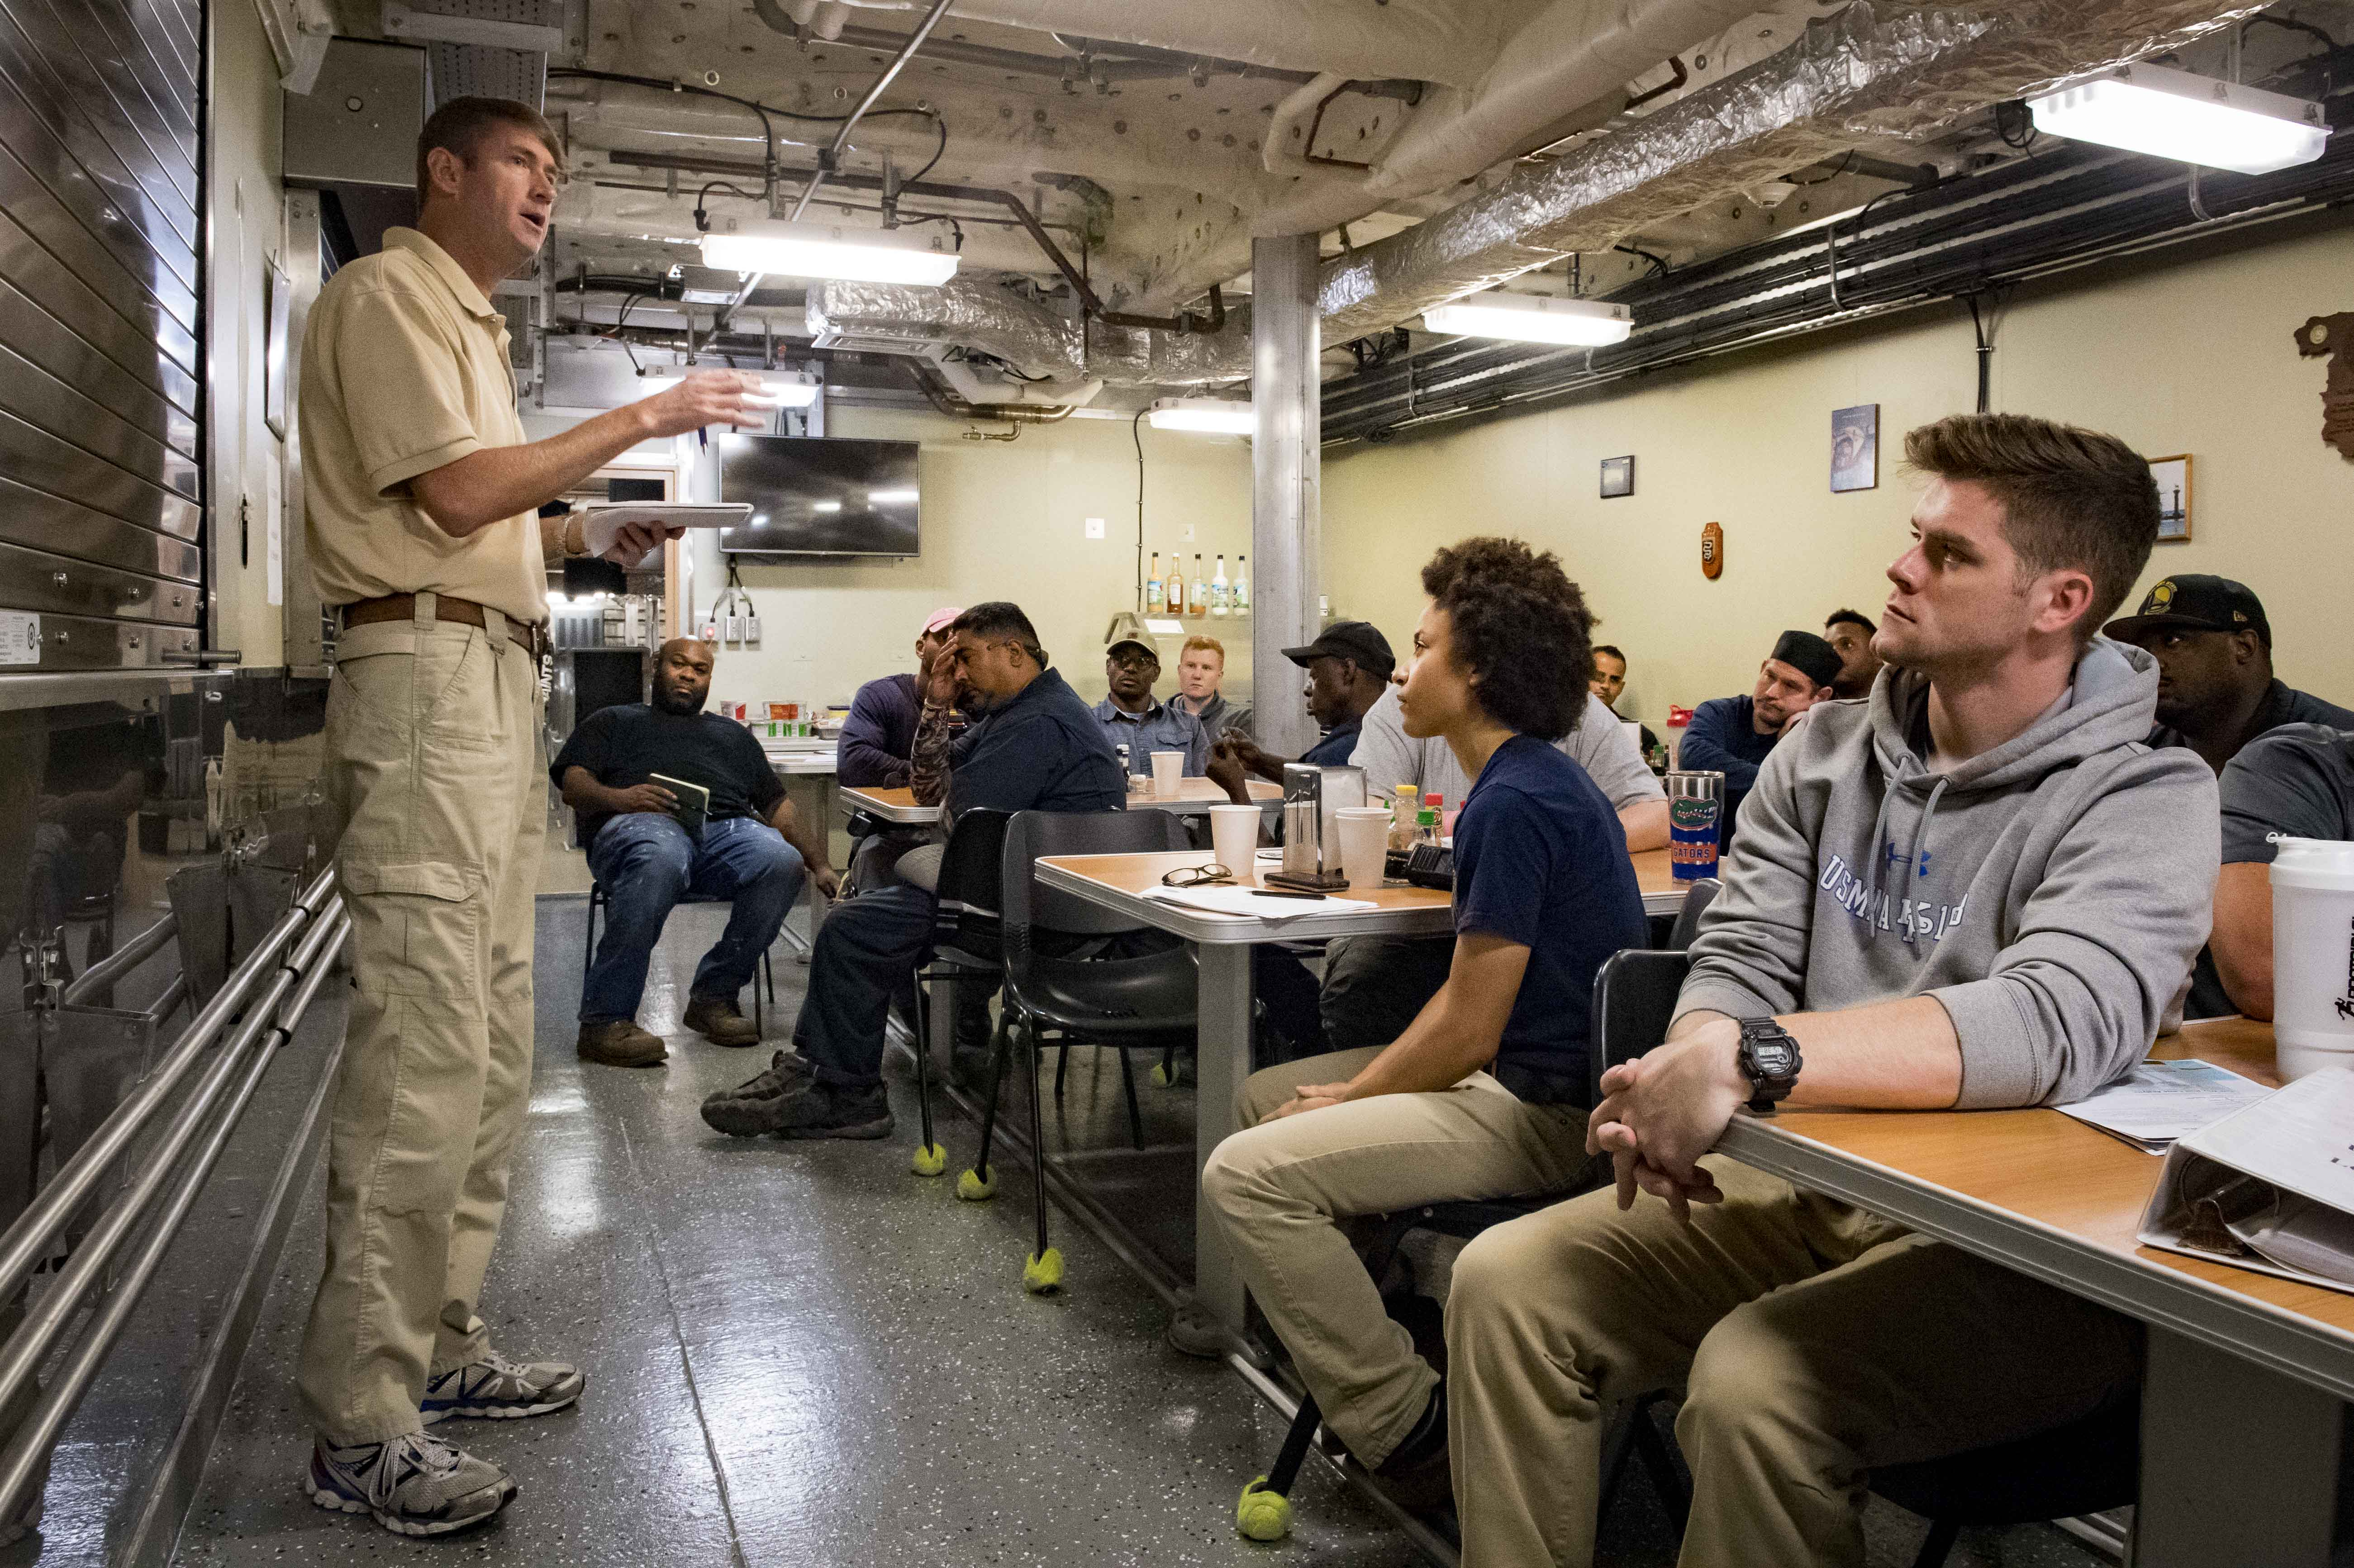 USNS Carson City Conducts First-Ever Black Sea Operation by an